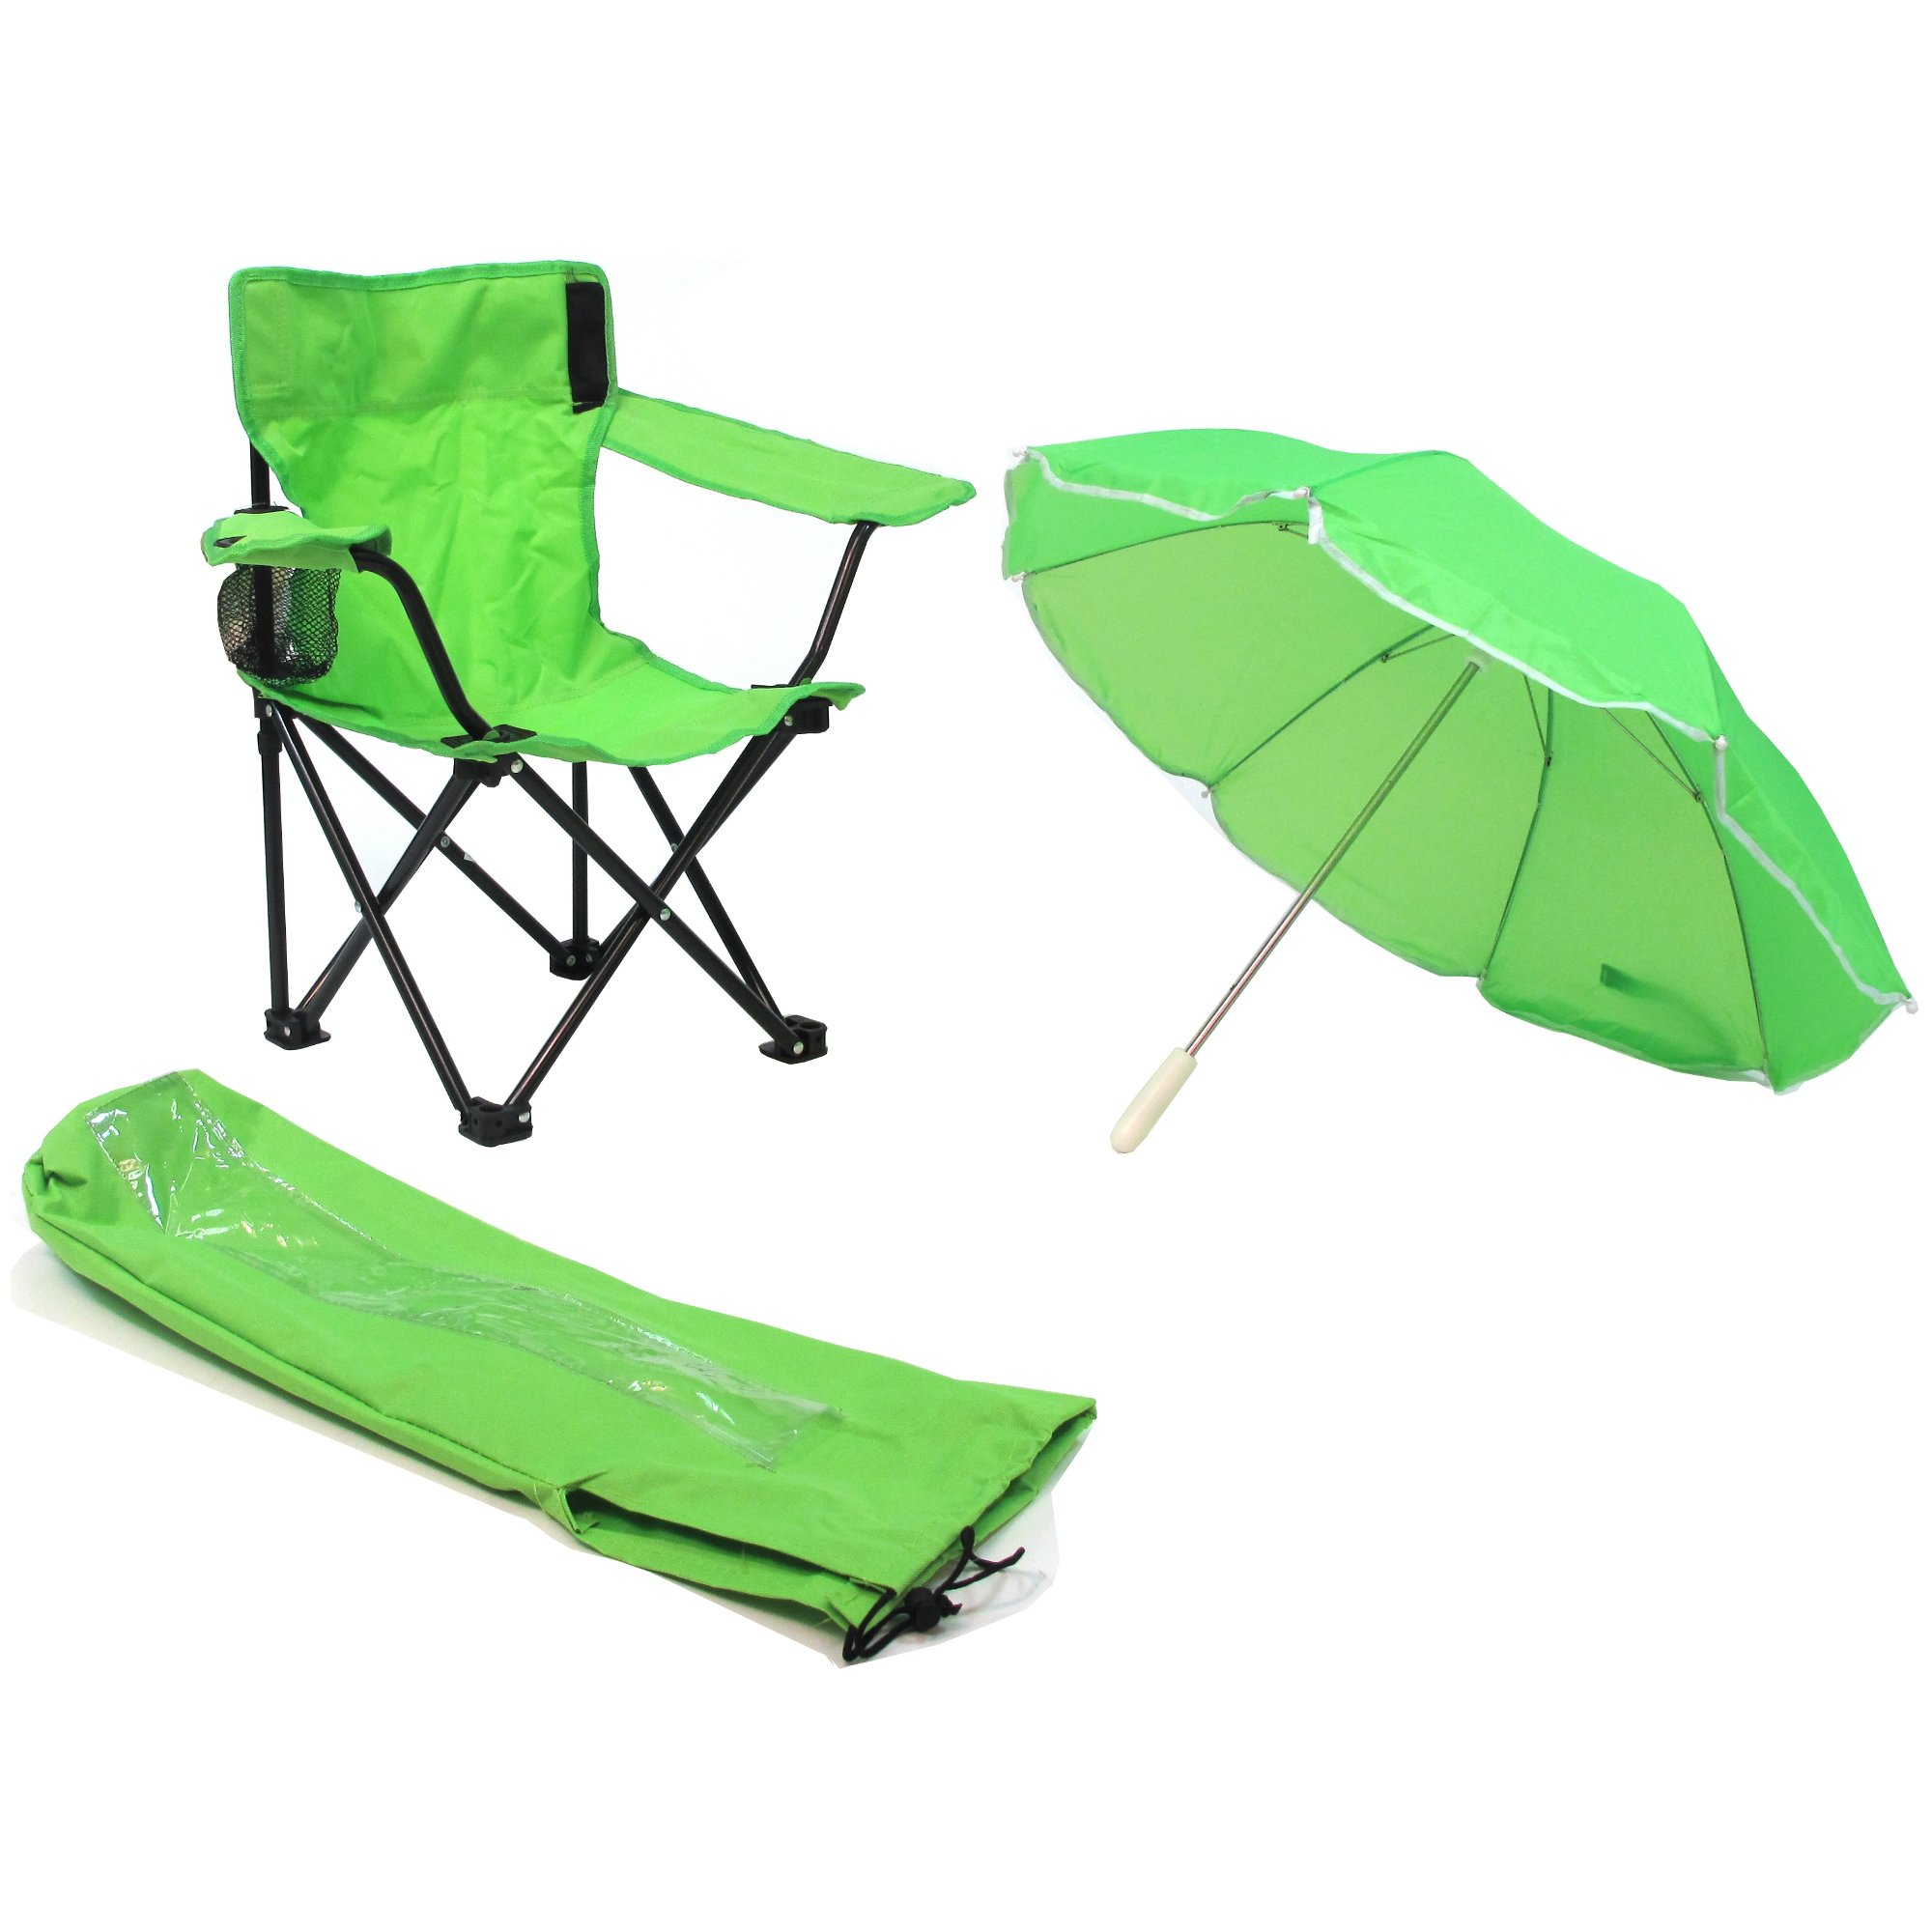 Redmon Umbrella Camping Chair with Matching Shoulder Bag, Lime Green by Redmon (Image #1)